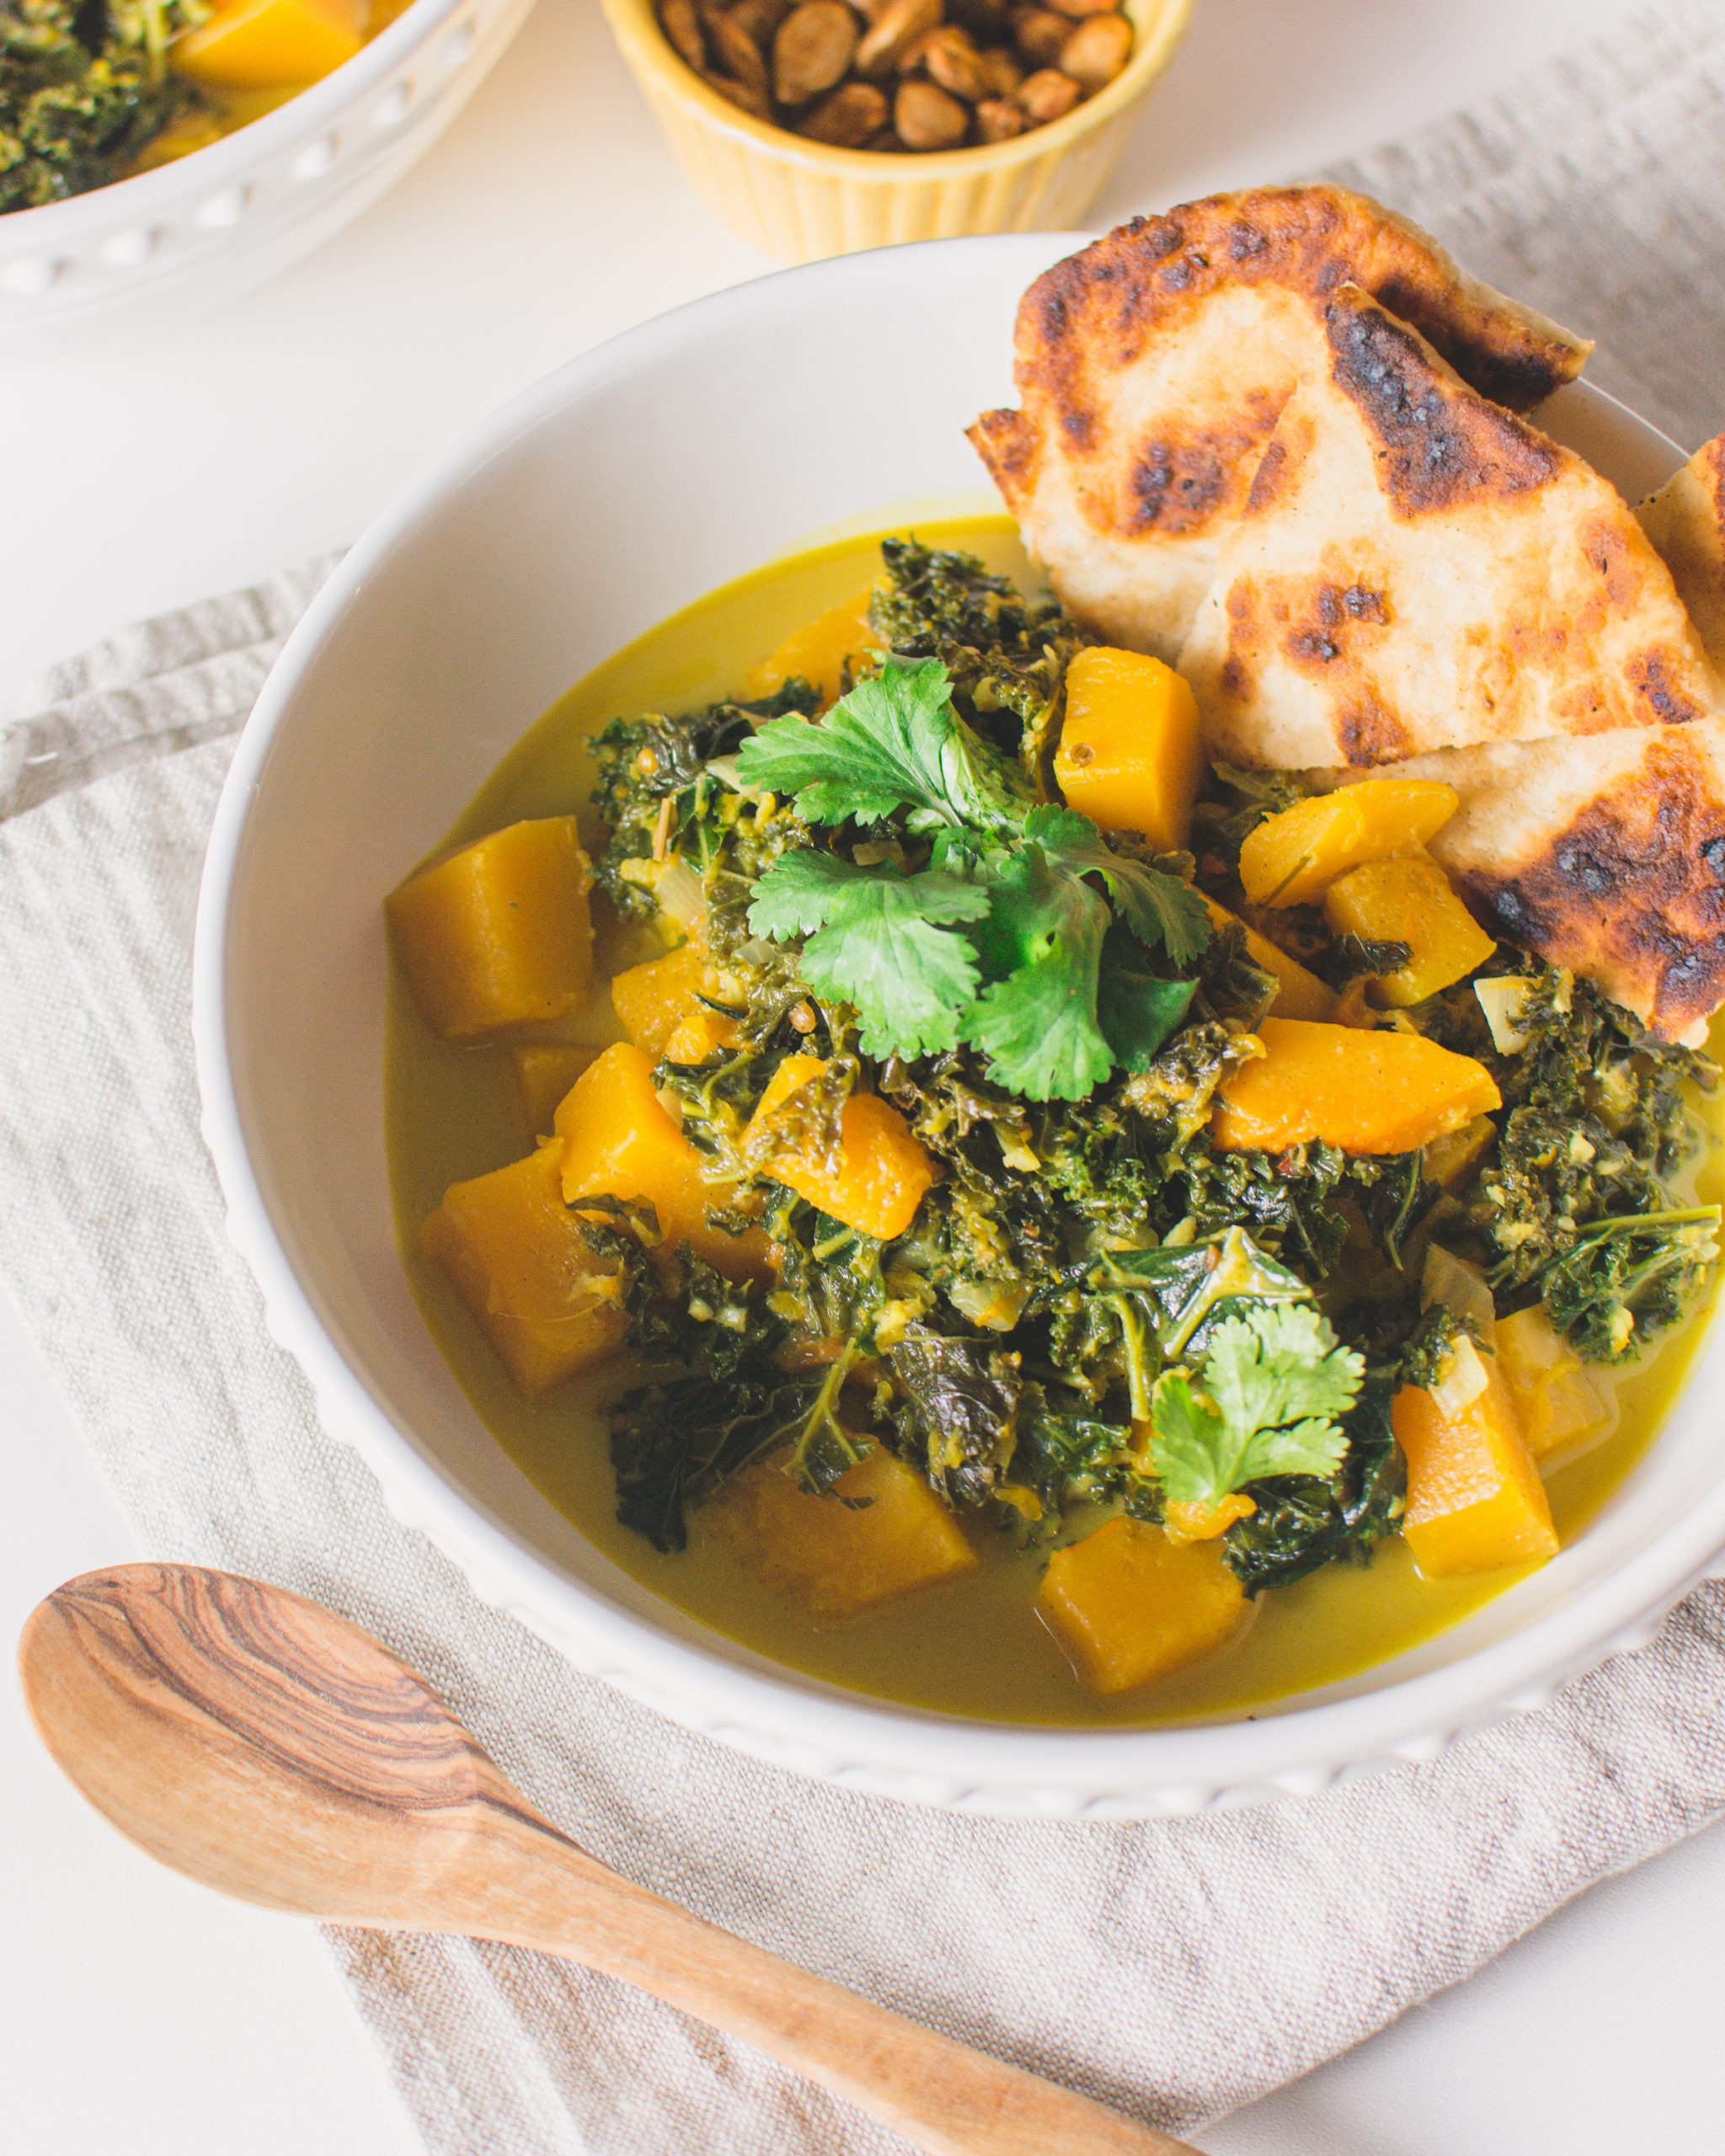 Vegan Pumpkin Kale Curry - Butternut Squash and Kale make the best vegan curry! It's easy to make, healthy and a comfort food. You can make the pumpkin kale curry in one pot and make it for lunch or dinner. Serve with homemade naan bread and enjoy this delicious recipe! #vegancurry #pumpkincurry #kalerecipe #veganrecipe #vegetarian #coconutmilk #kale